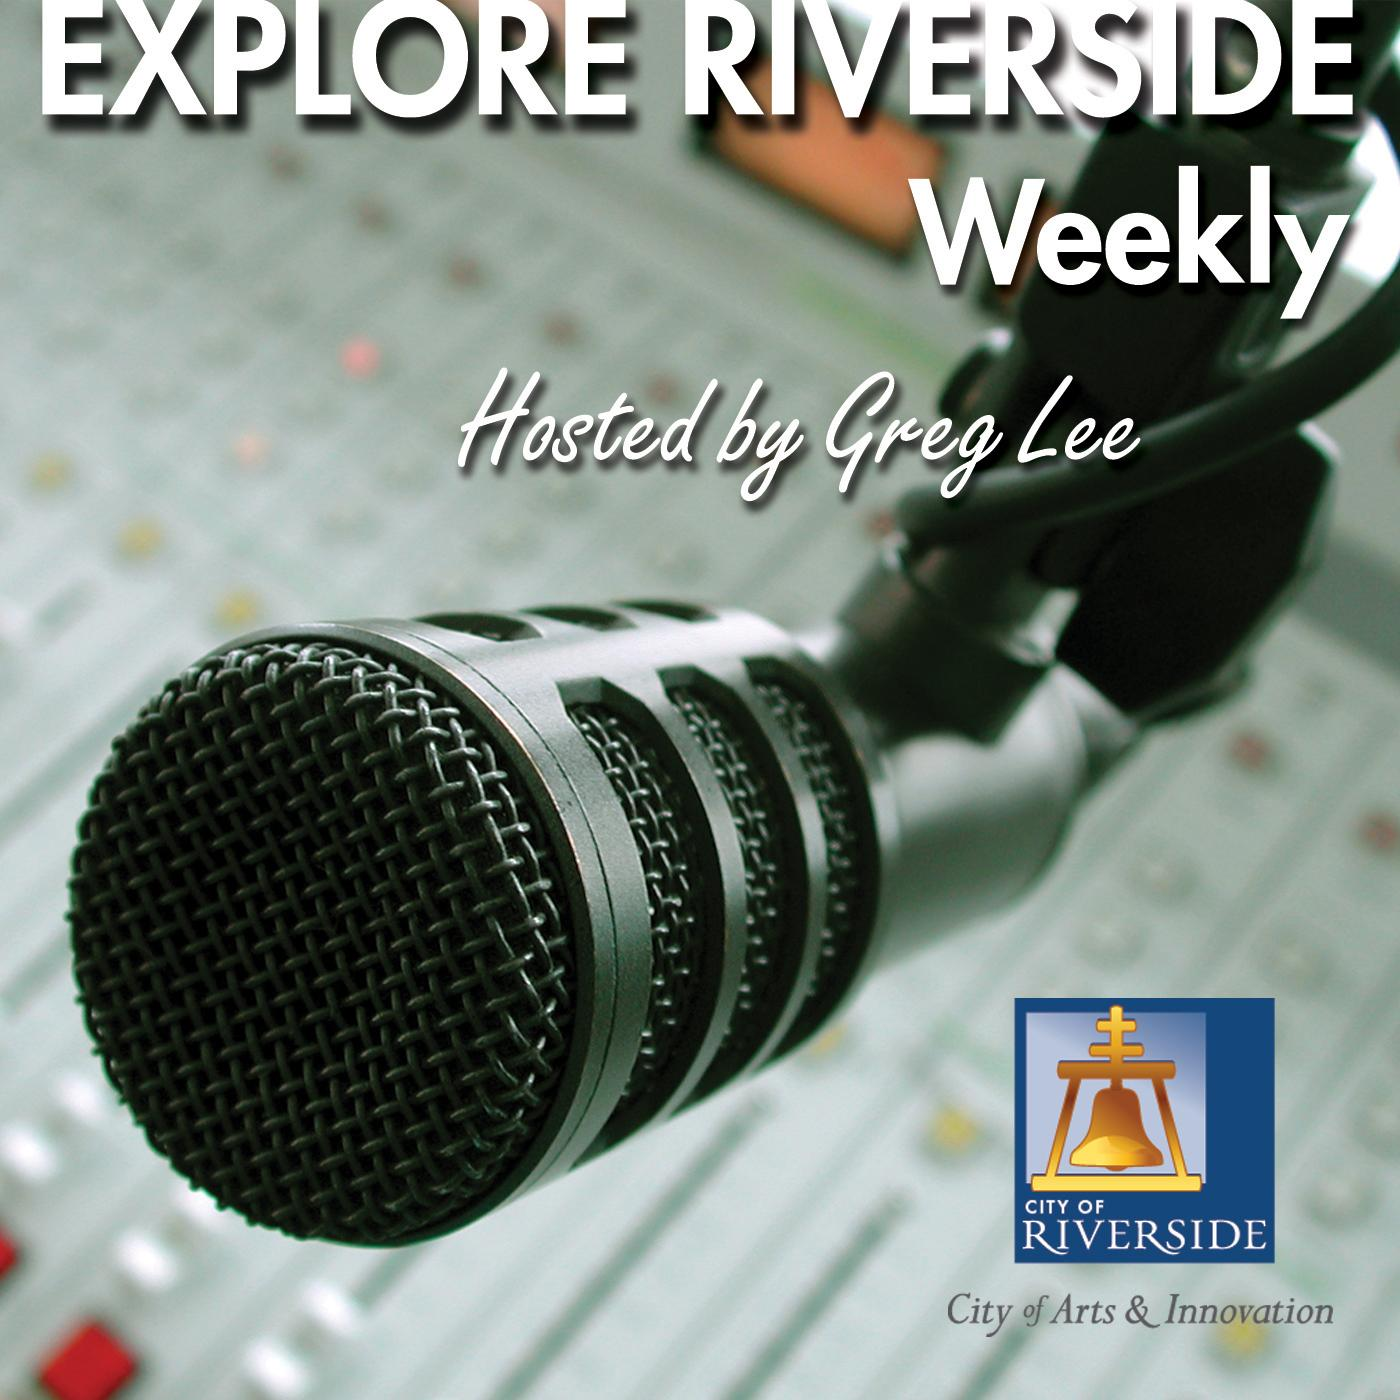 Explore Riverside Weekly